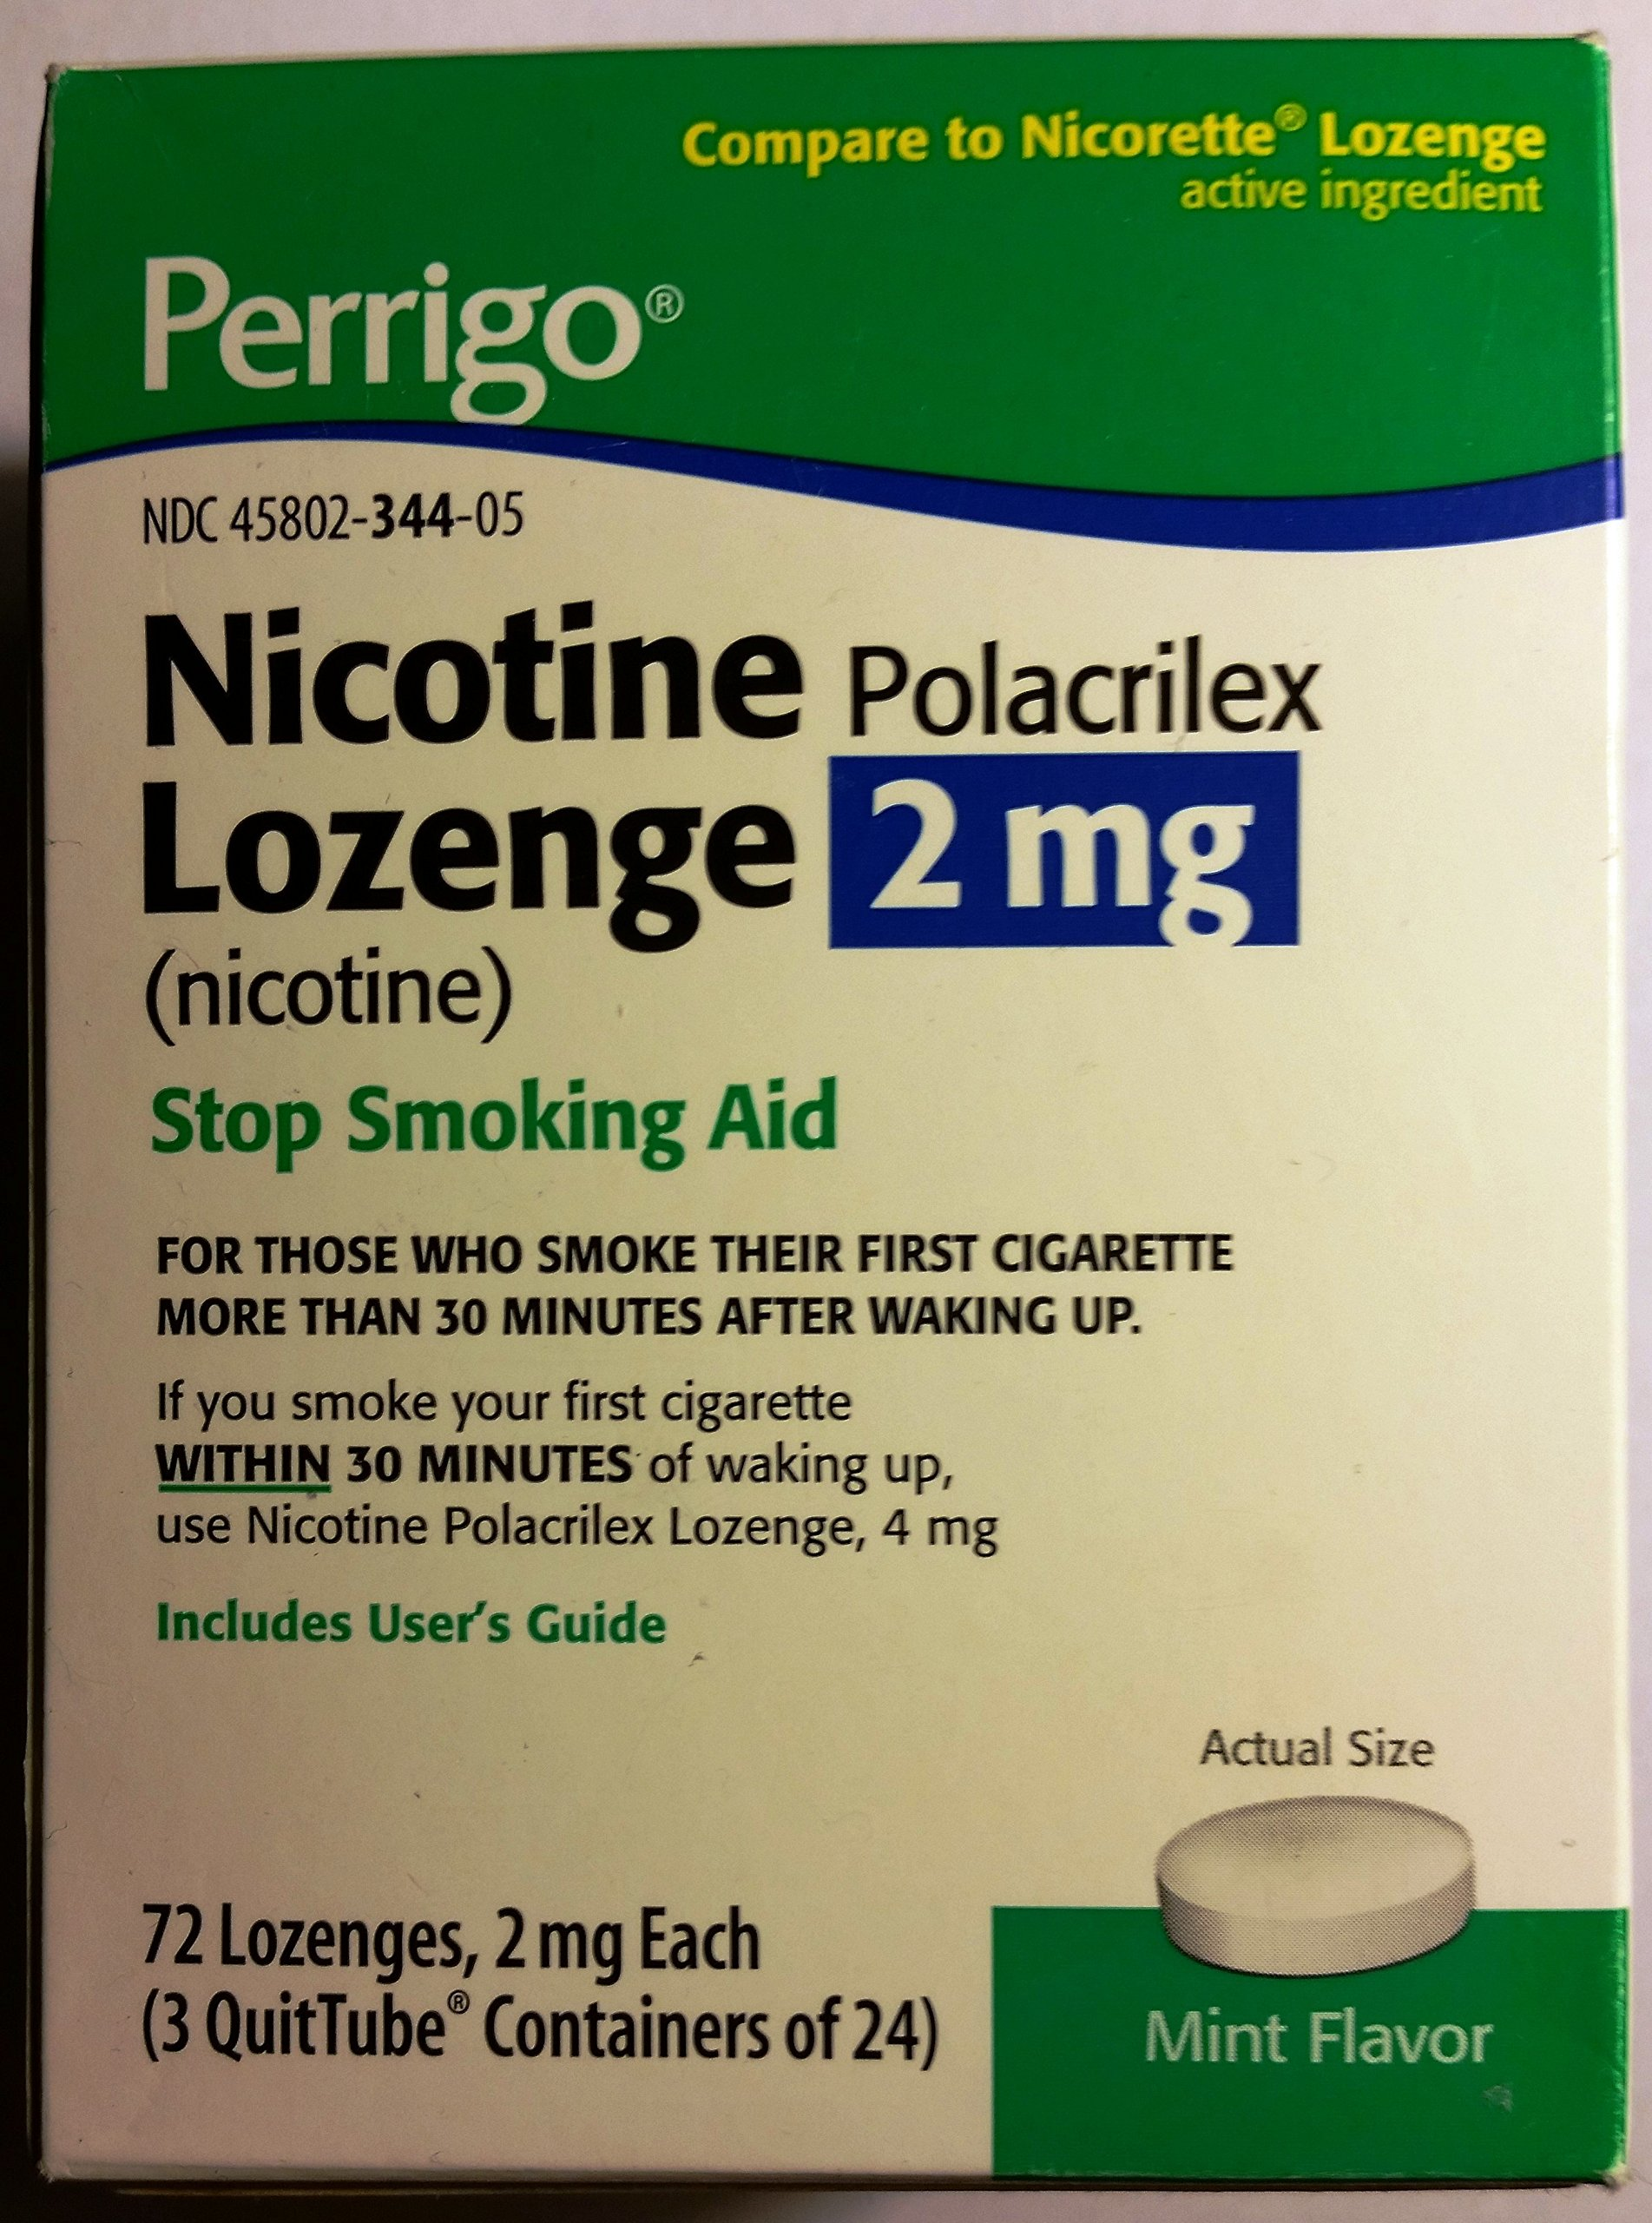 Perrigo Nicotine Polacrilex Lozenge 2mg ~ MINT flavored ~ 72ct *Compare to Nicorette*